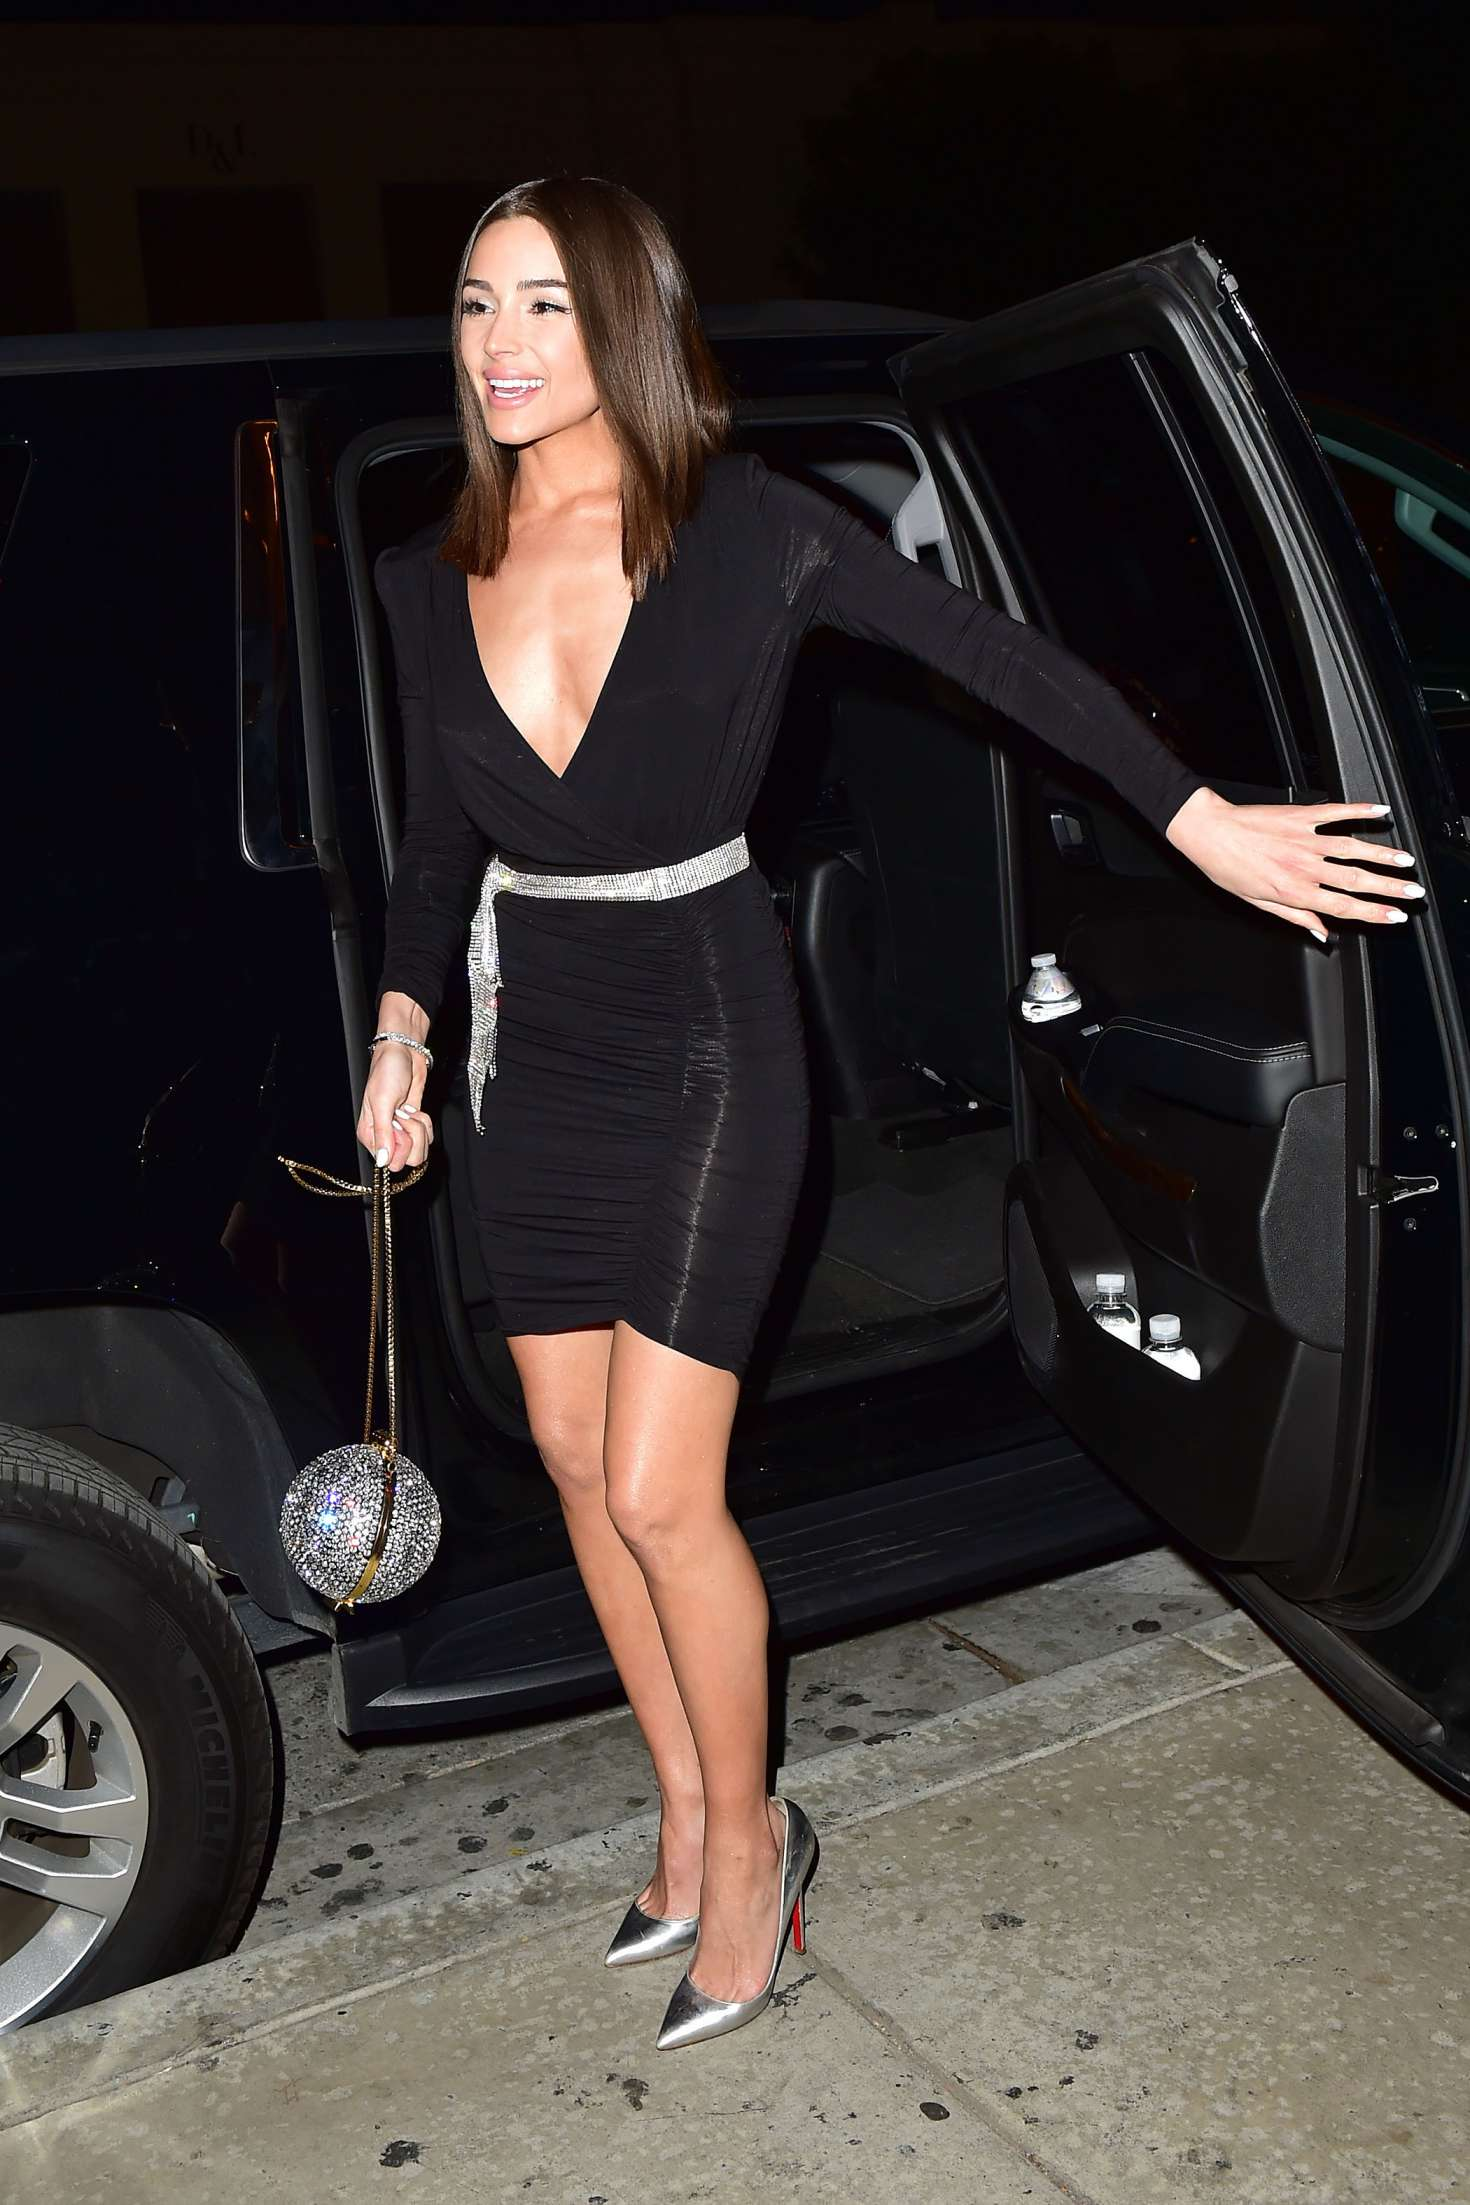 Olivia Culpo wearing a formfitting black dress with a polyester material, full sleeves, plunging neckline that almost went down to her waist and asymmetric hem